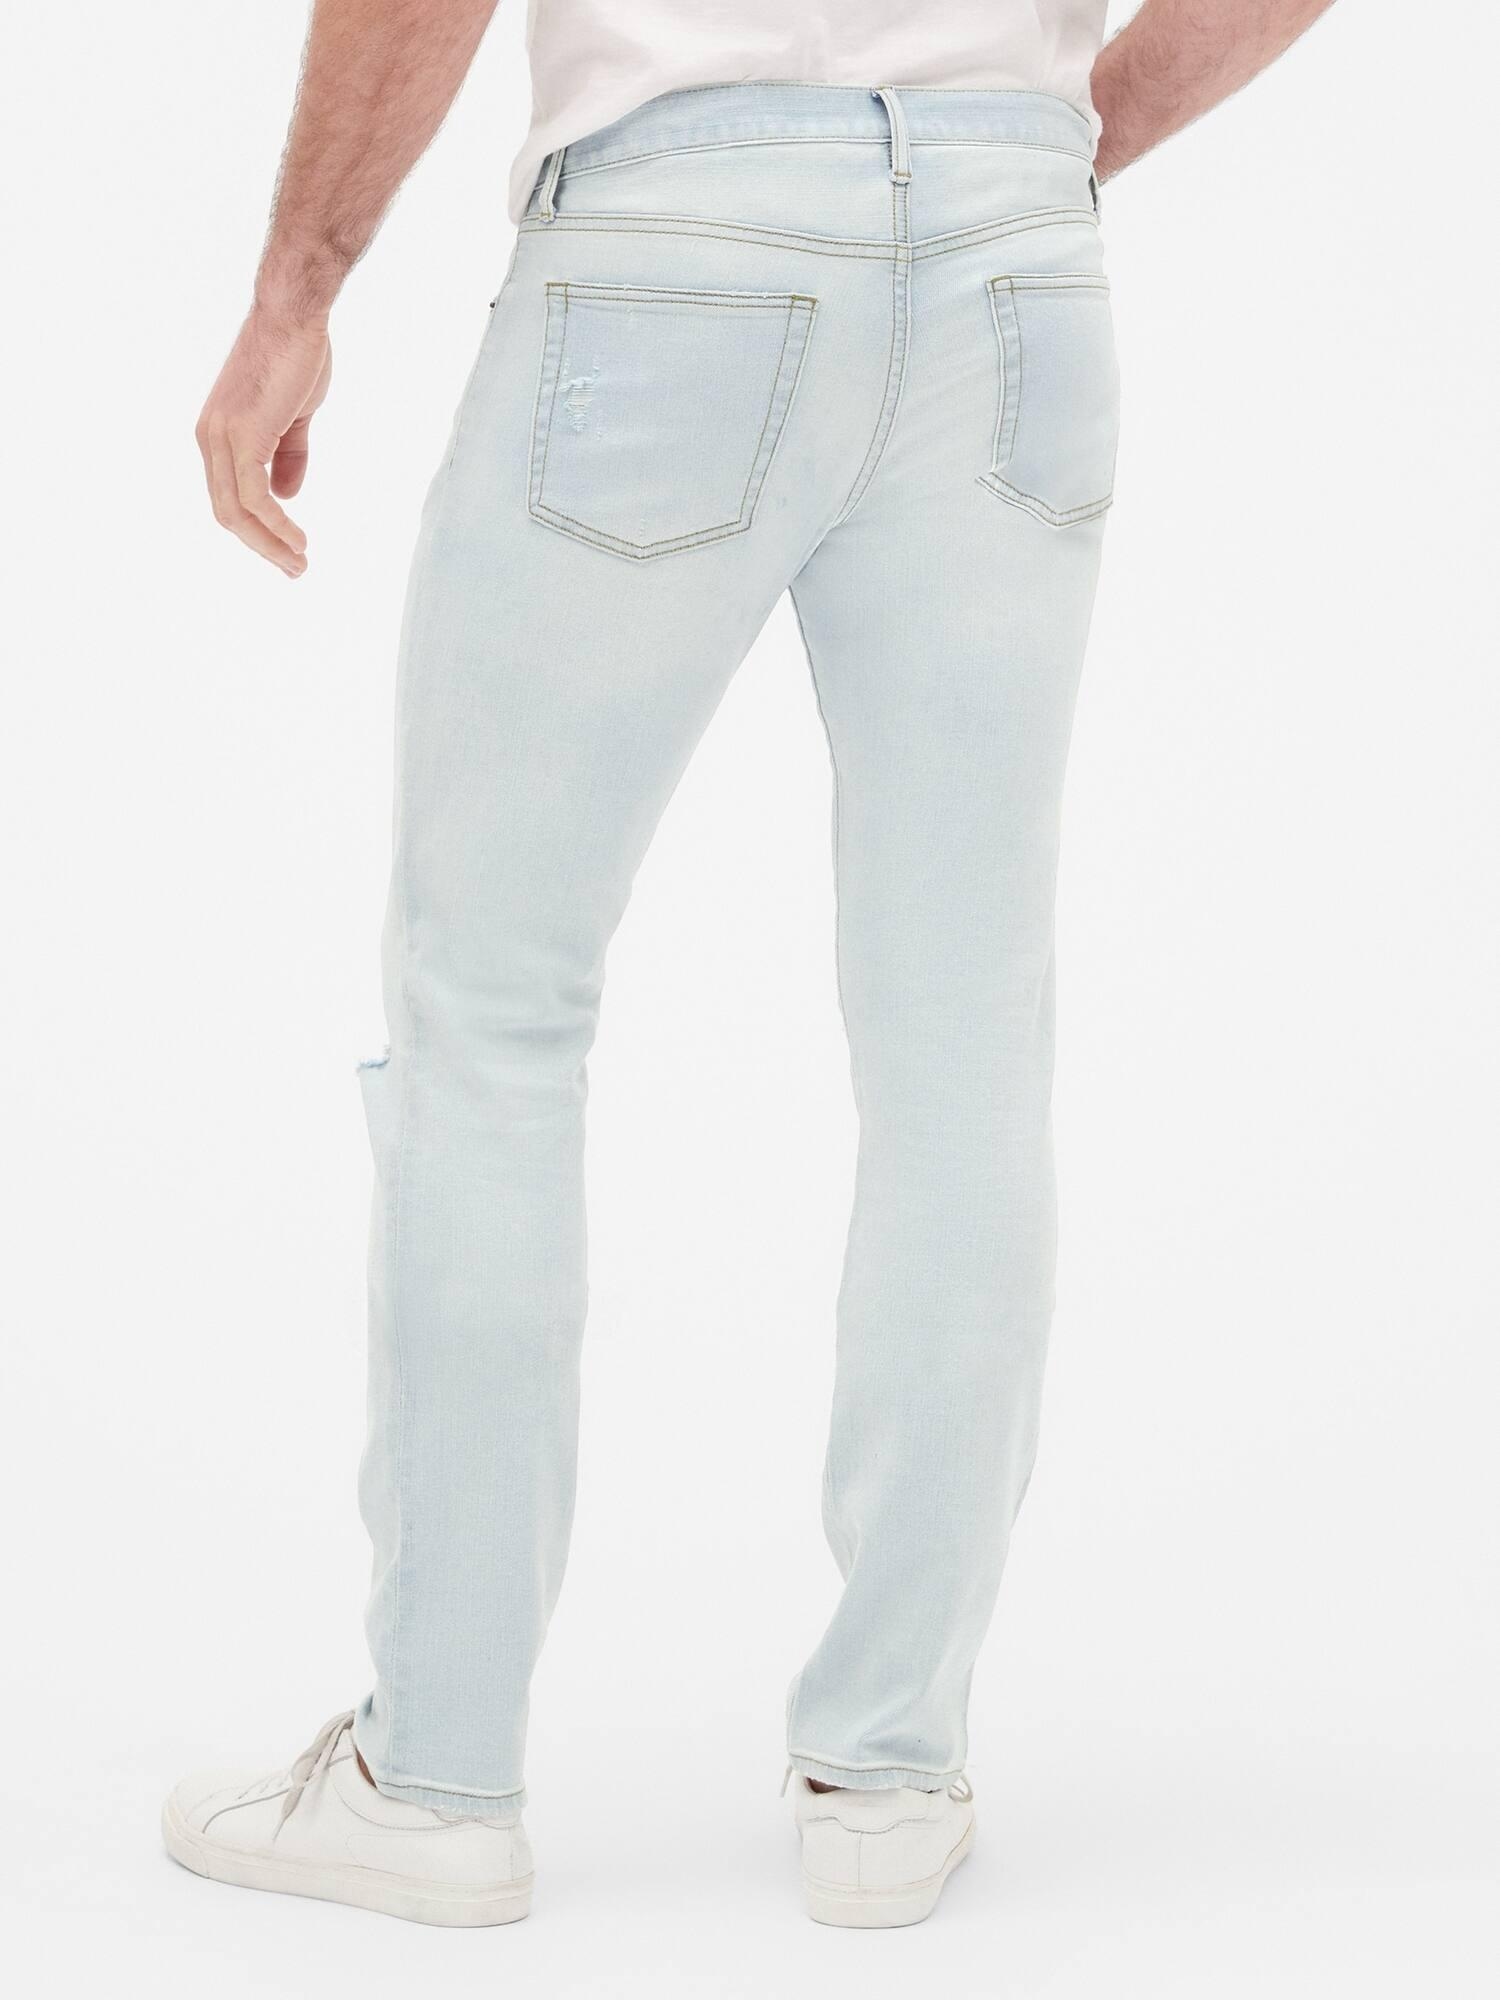 bec41bea ... Distressed Skinny Jeans With Gapflex for Men - Lyst. View fullscreen